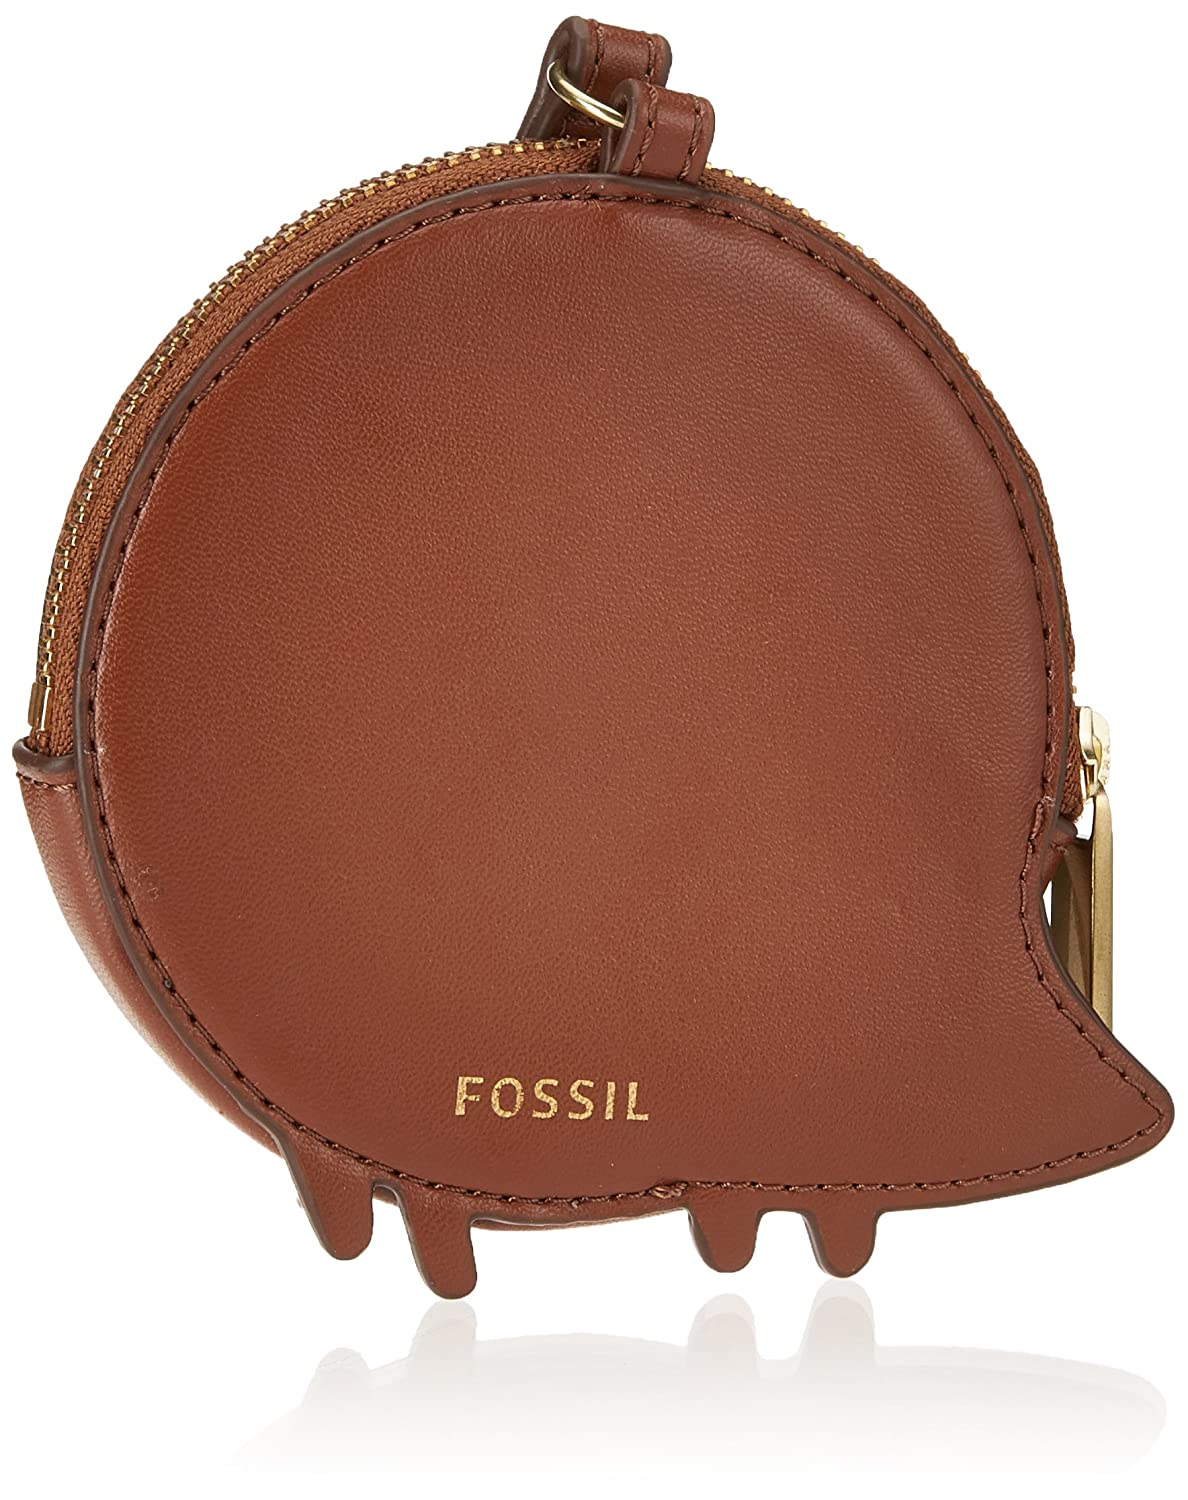 Fossil - Novelty, Monederos Mujer, Blau (Steel Blue), 17.78 ...